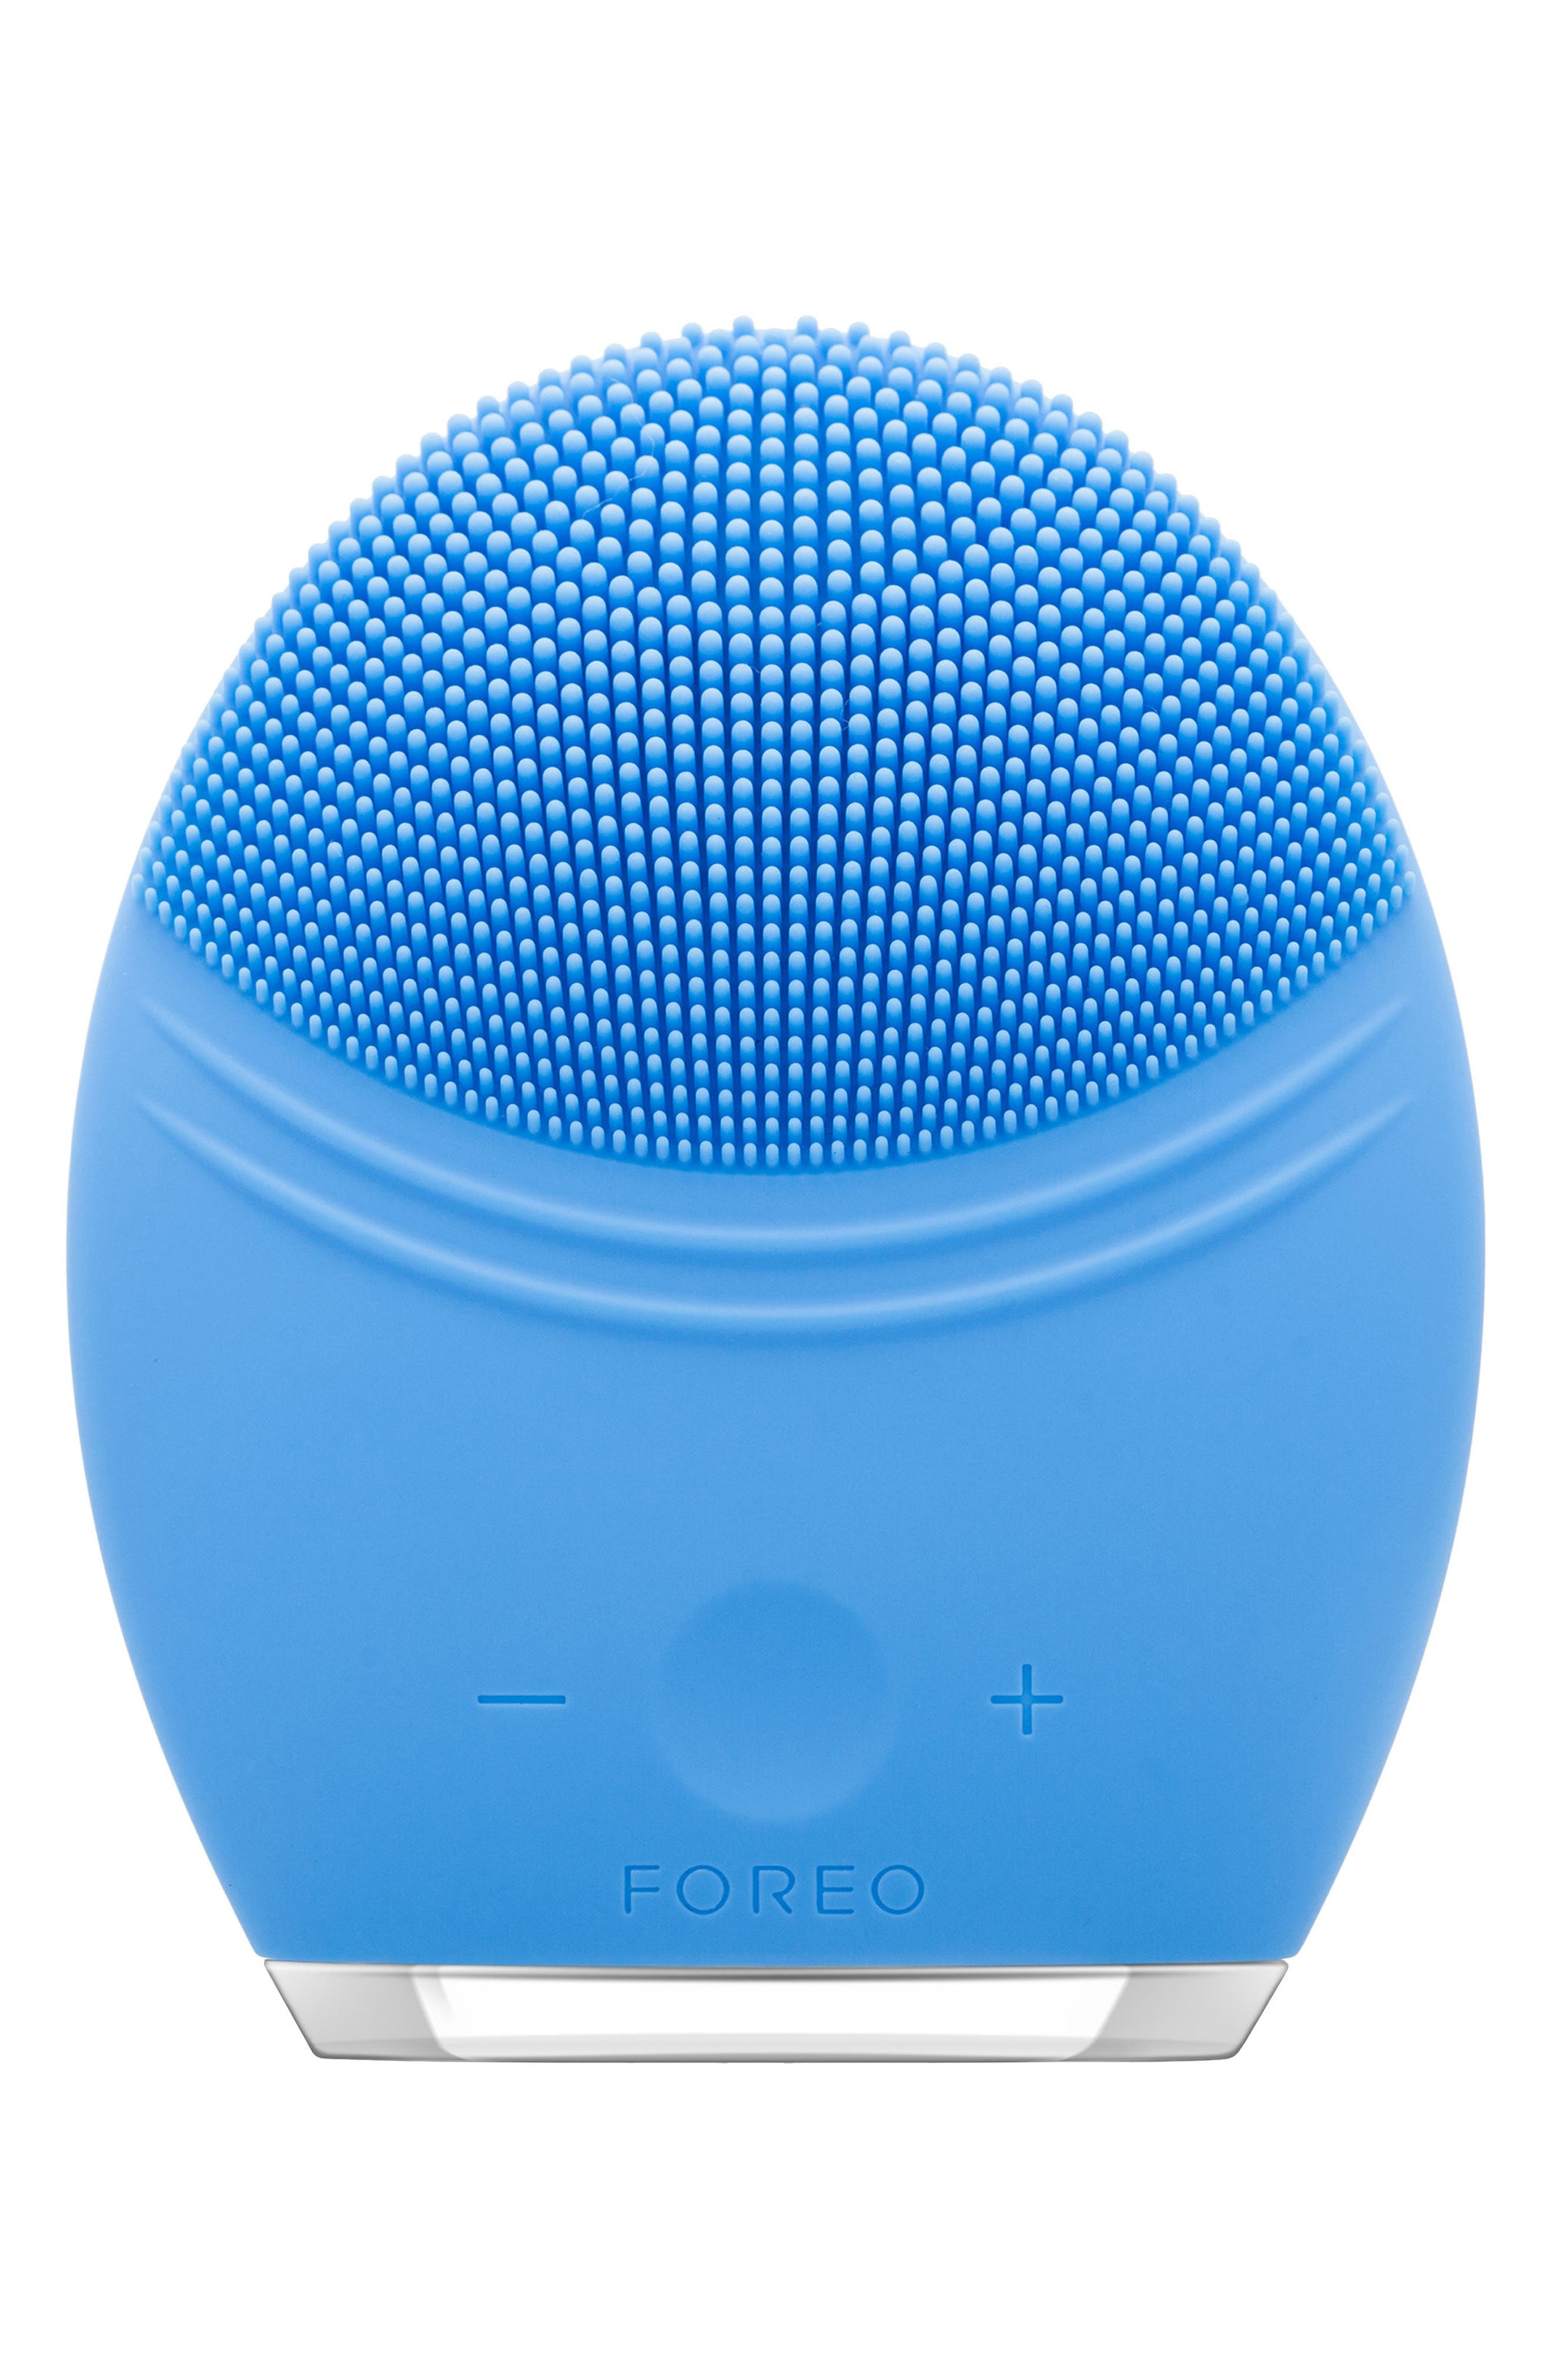 LUNA<sup>™</sup> 2 Pro Facial Cleansing & Anti-Aging Device,                         Main,                         color, AQUAMARINE